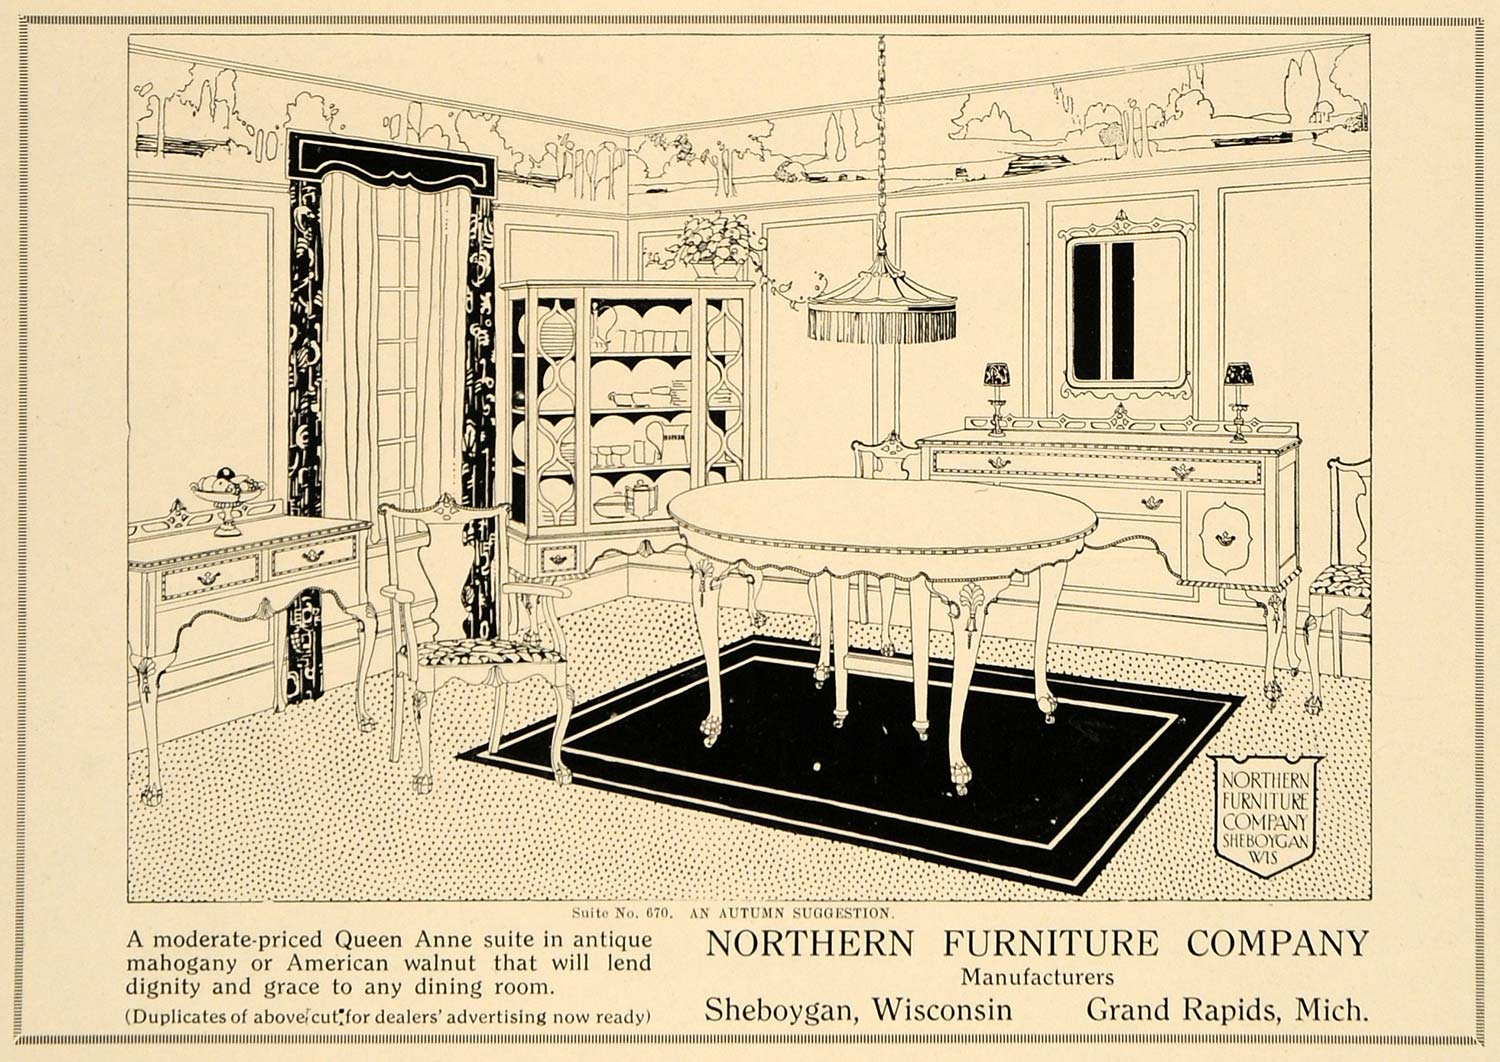 1918 Ad Northern Furniture Co Queen Anne Antique Table